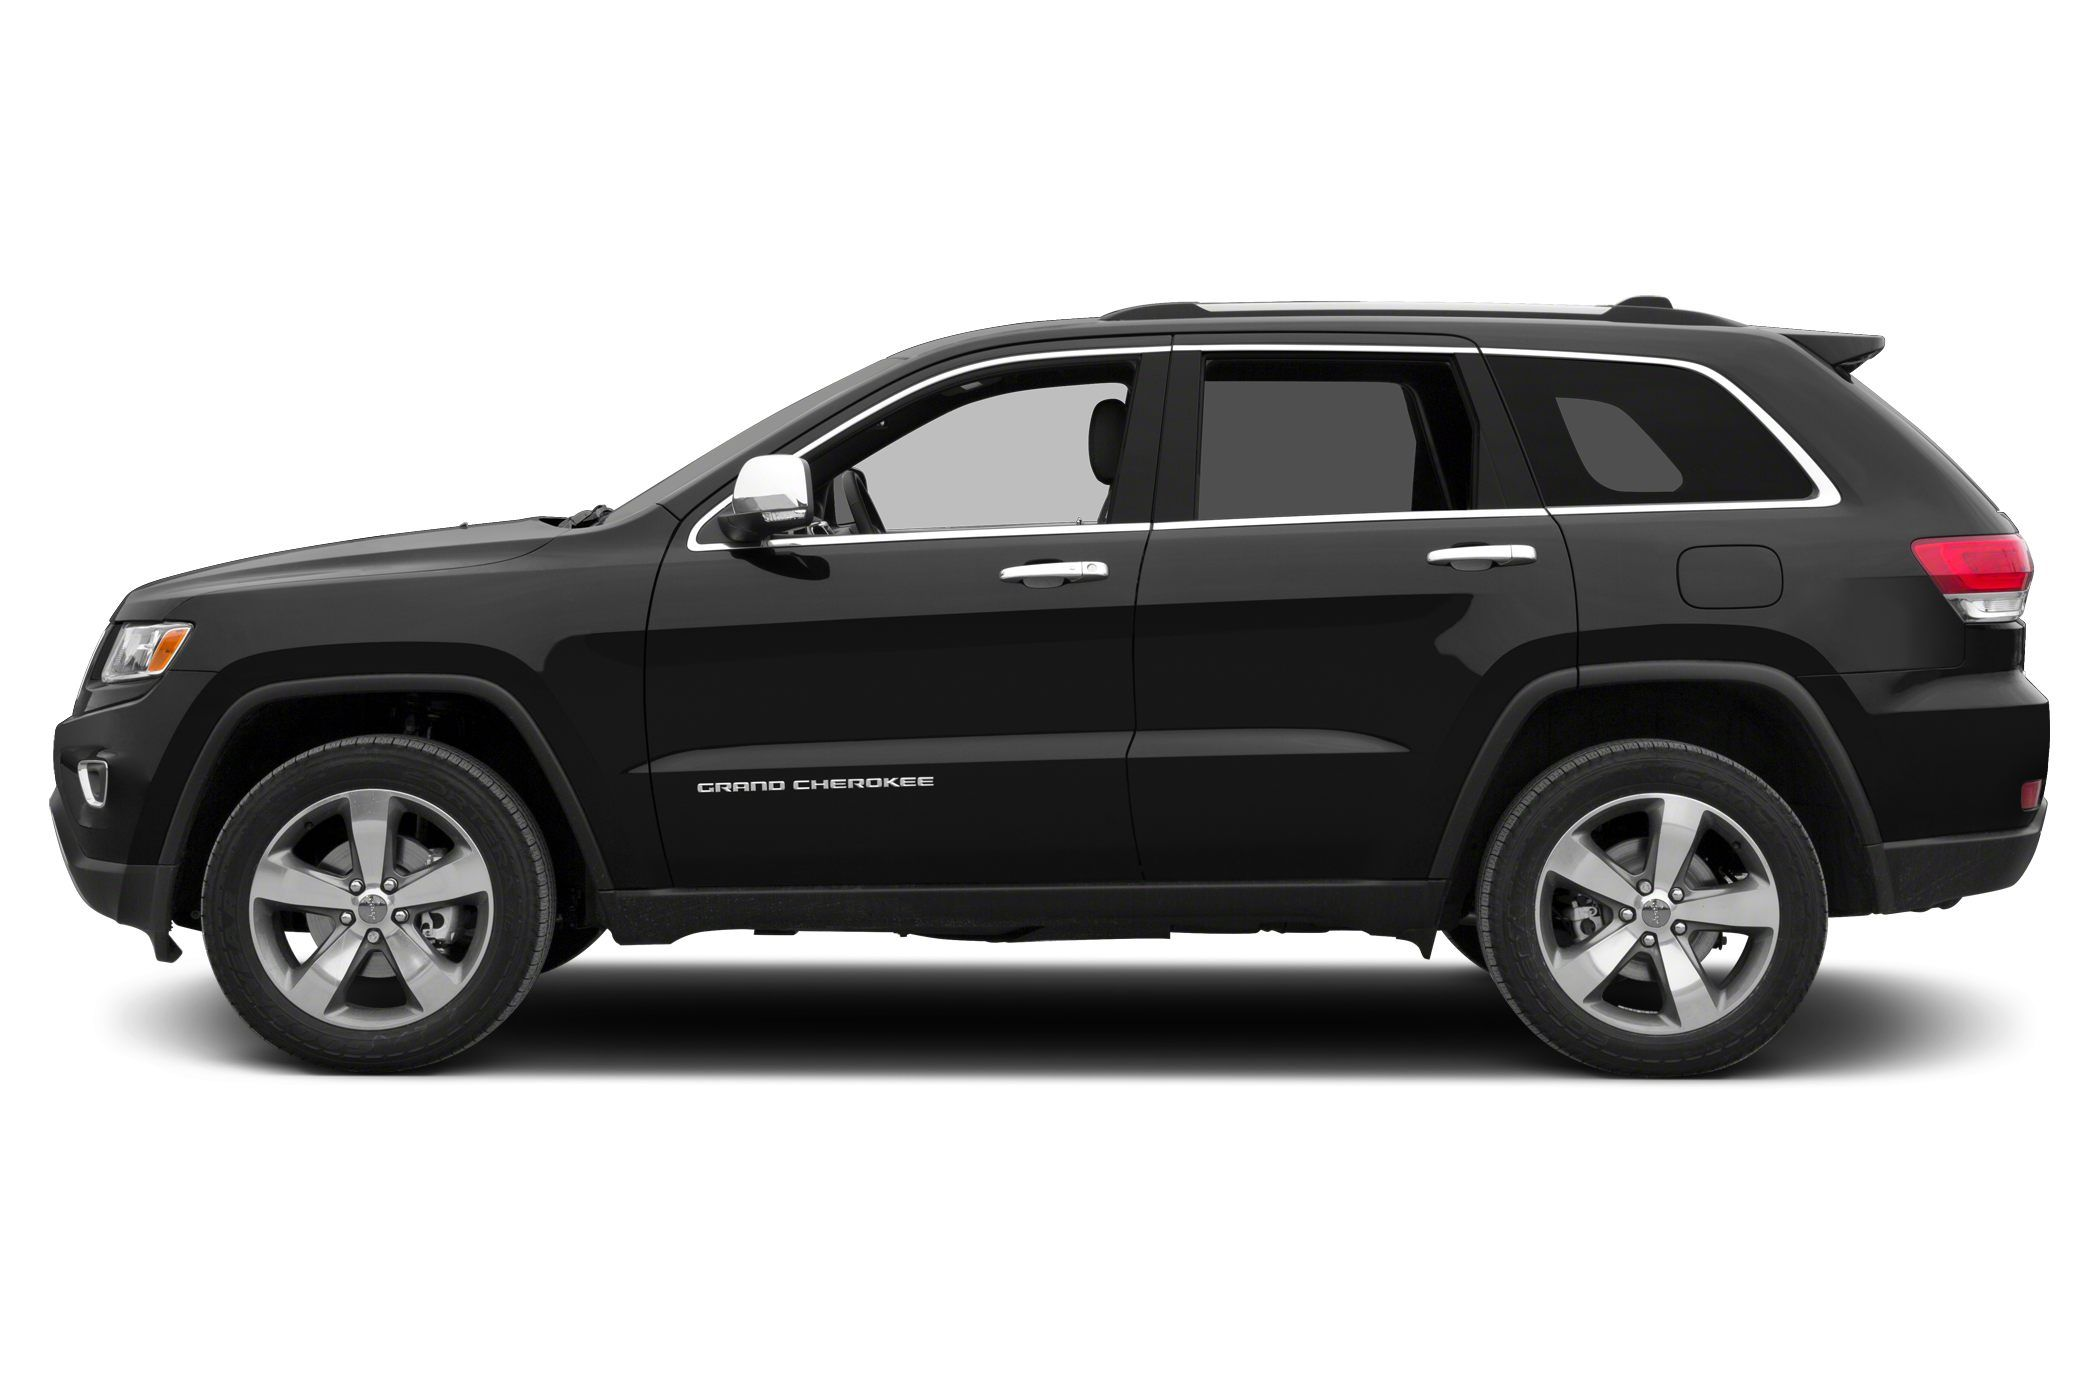 2015 jeep grand cherokee limited black auto speed pinterest jeep grand cherokee cherokee. Black Bedroom Furniture Sets. Home Design Ideas